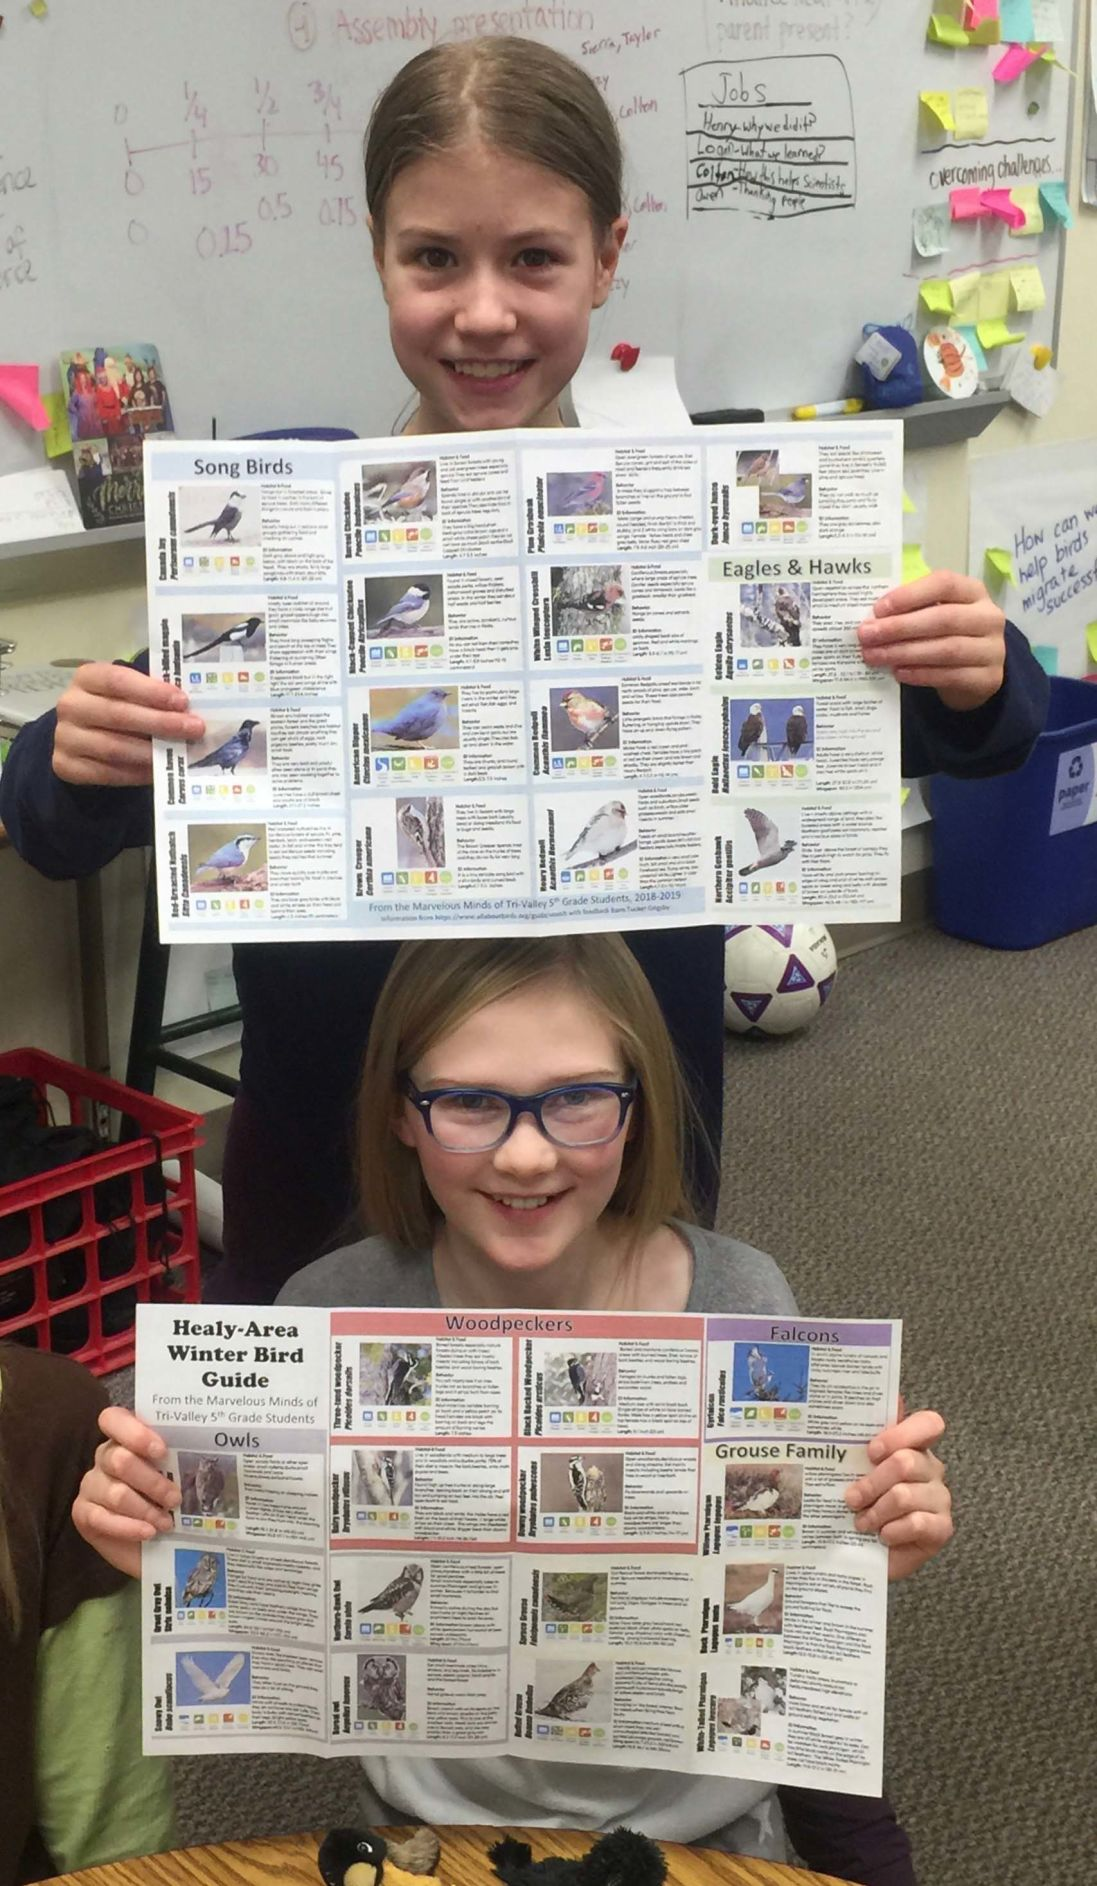 Healy School Christmas Assembly 2020 Students create detailed winter bird guide for Healy area | Our